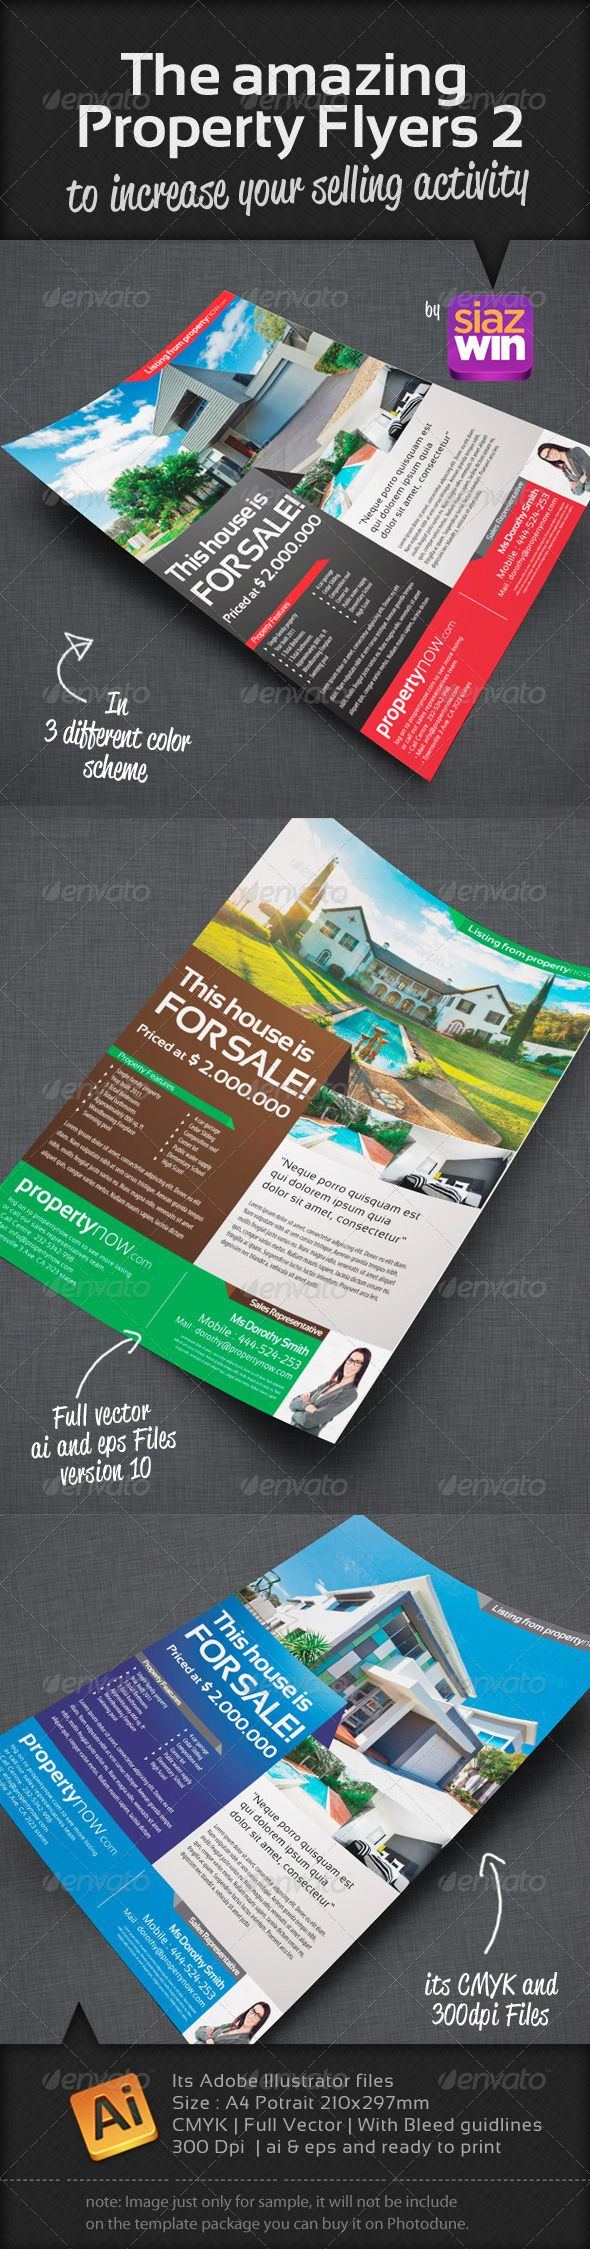 1000 images about print templates adobe photoshop the amazing property flyers 2